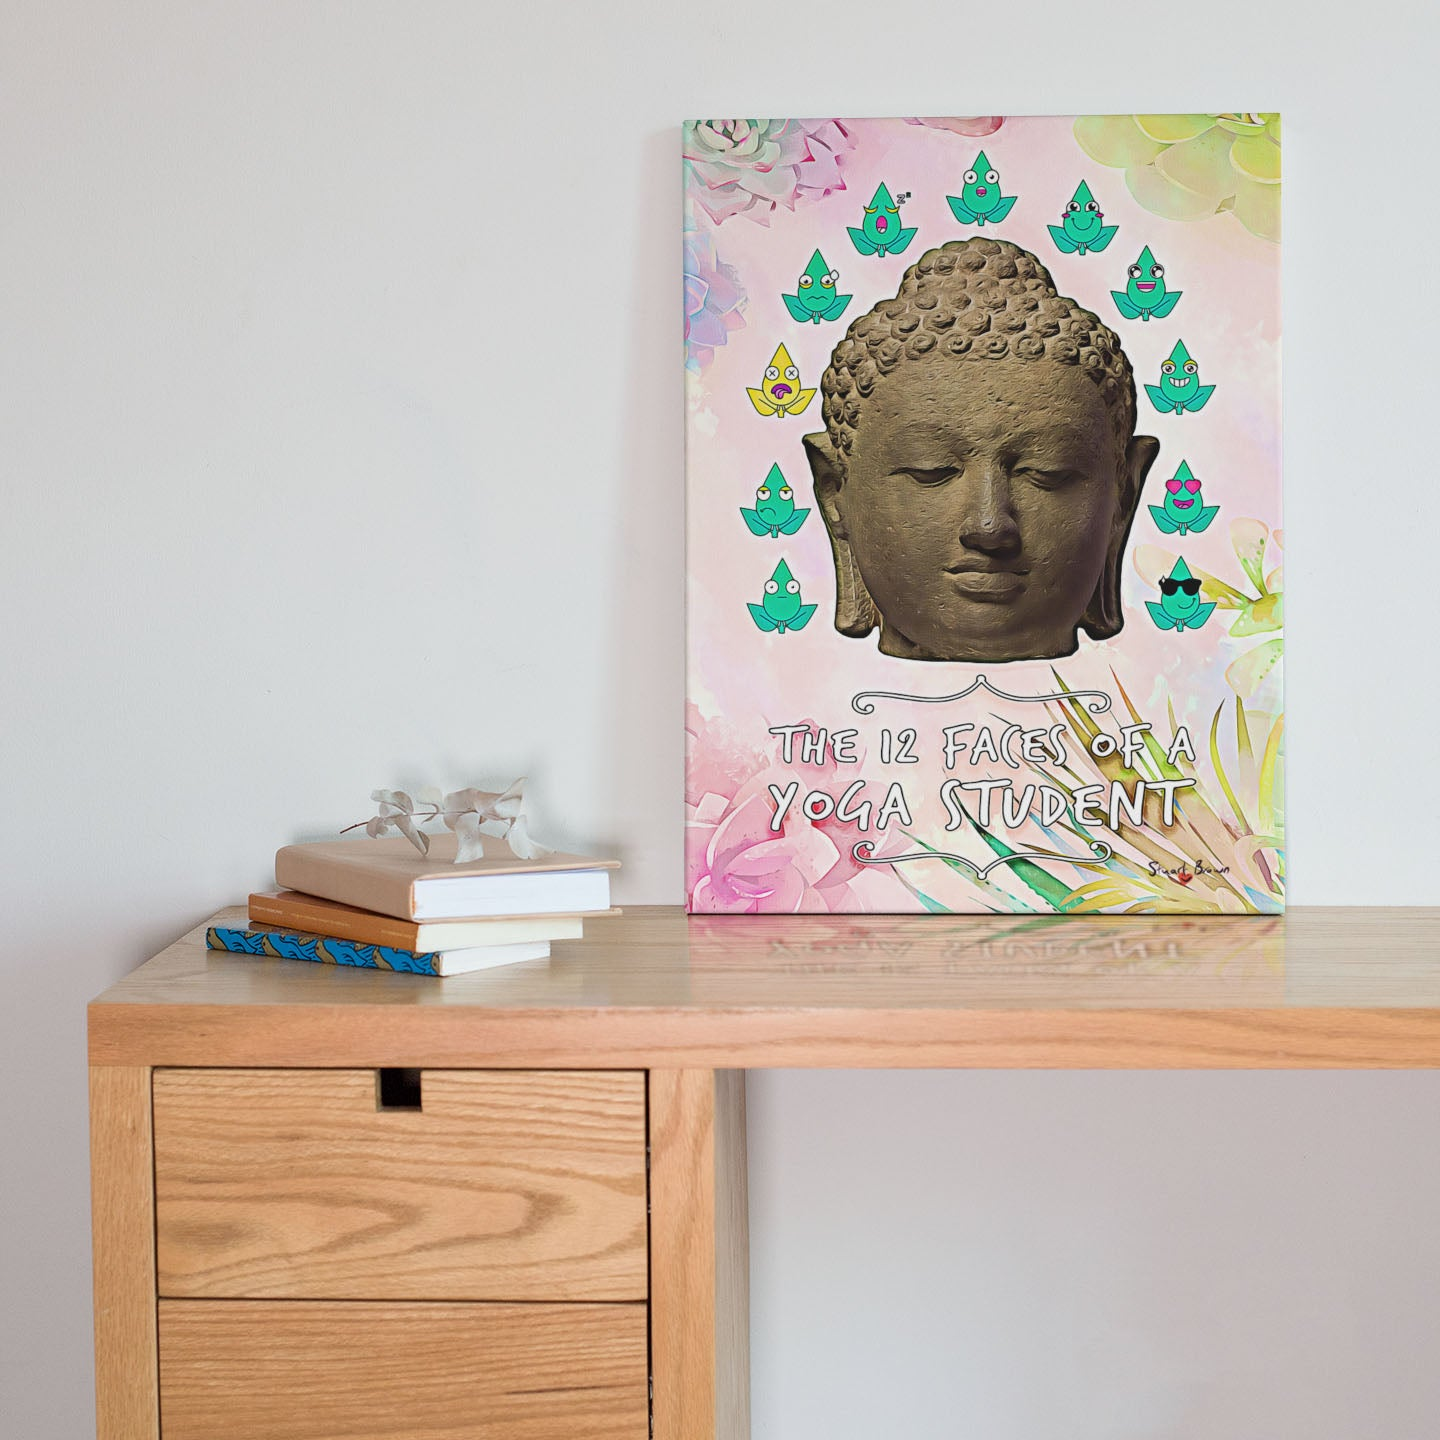 emotions during yoga practice art